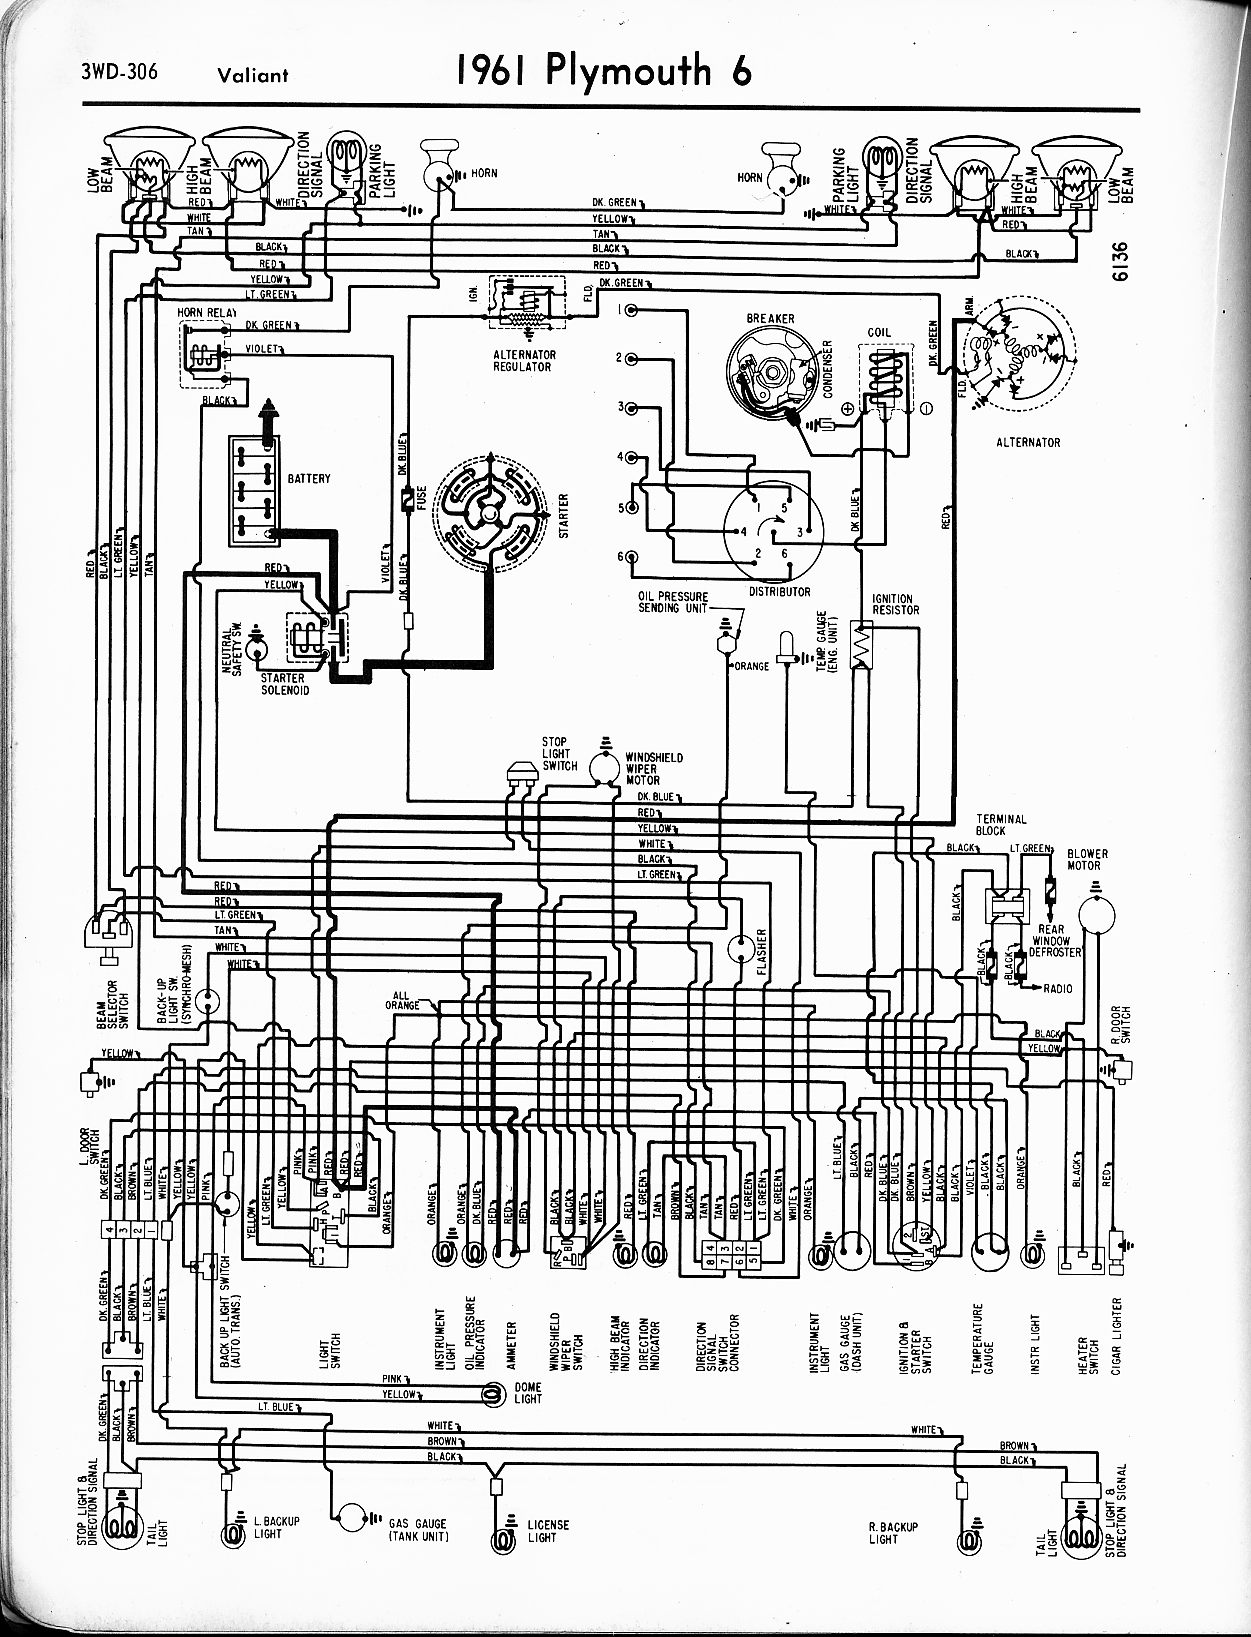 hight resolution of wiring diagram for 1965 plymouth valiant use wiring diagram 68 plymouth wiring diagram